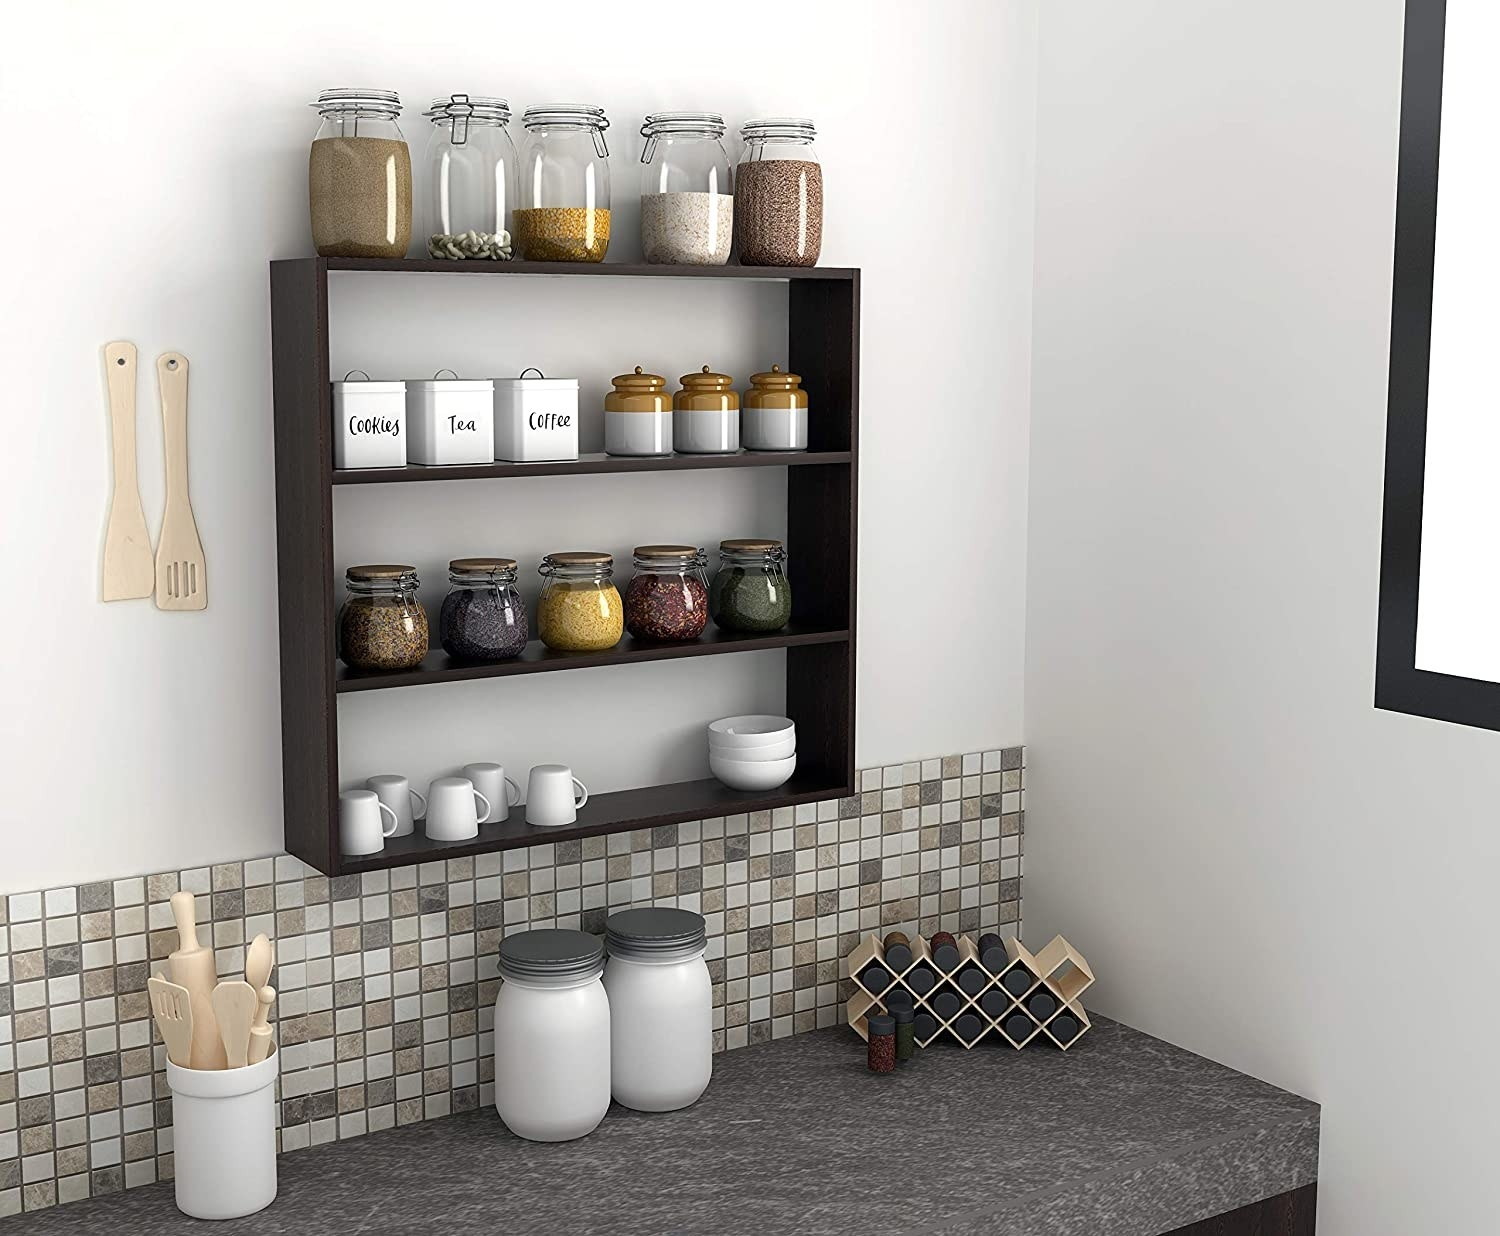 A large cube shelf with three shelf slots, pictured in a kitchen with pantry items on it.